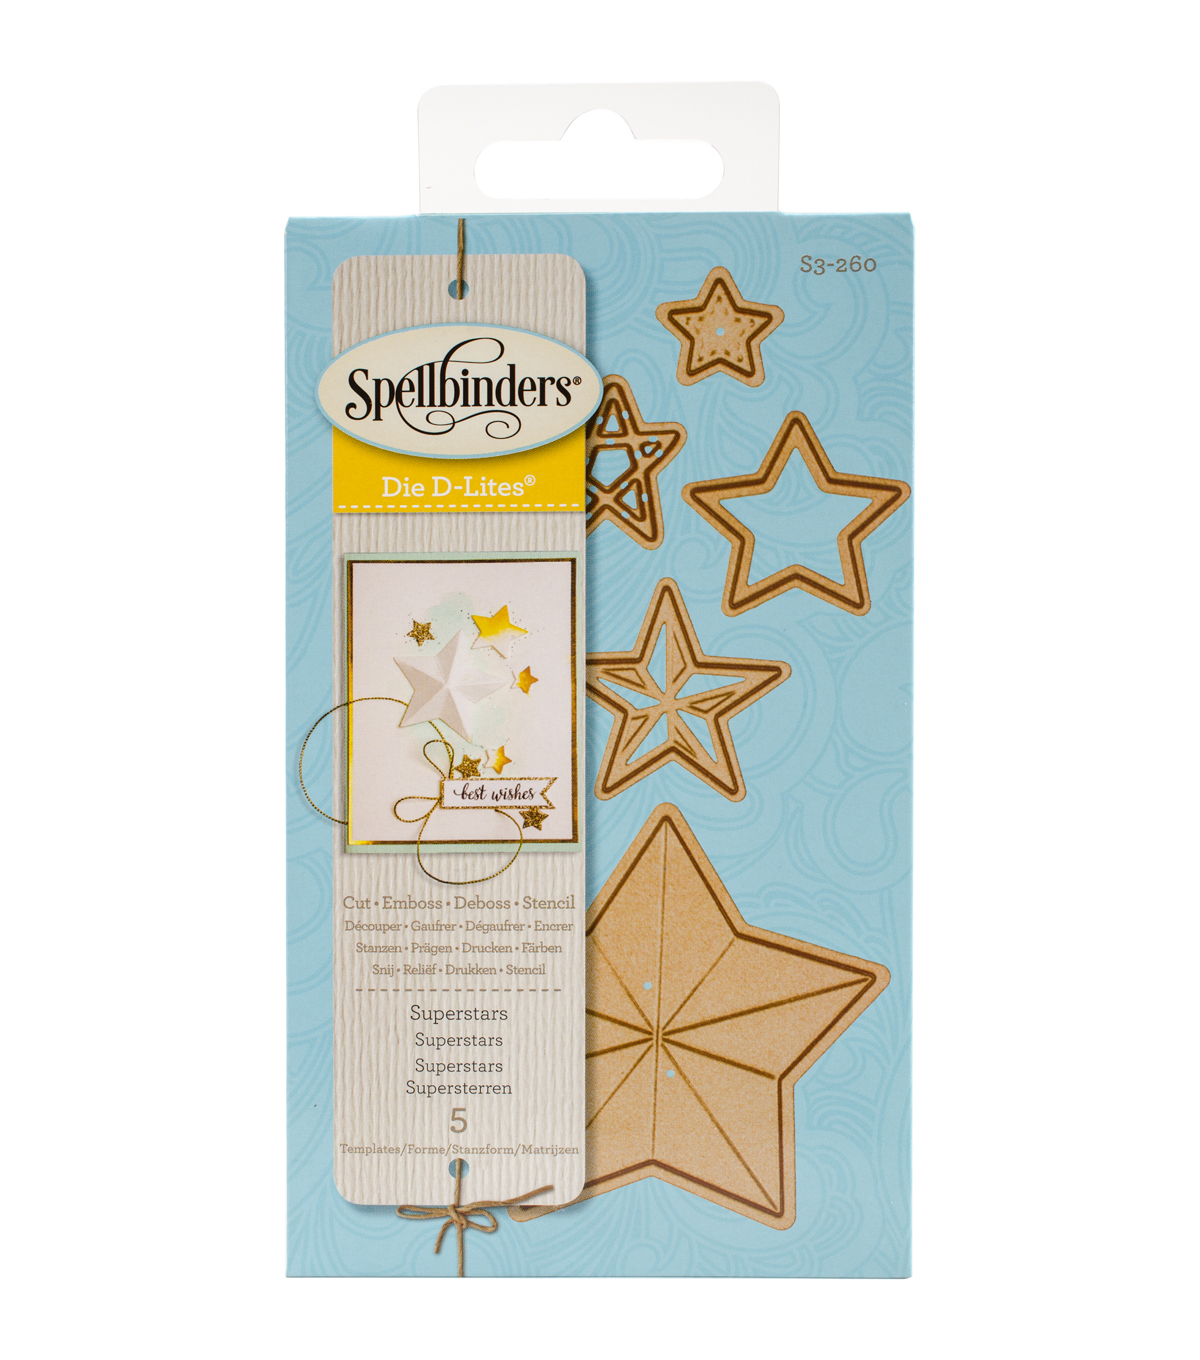 Spellbinders® Die D-Lites 5 Pack Etched Dies-Superstars